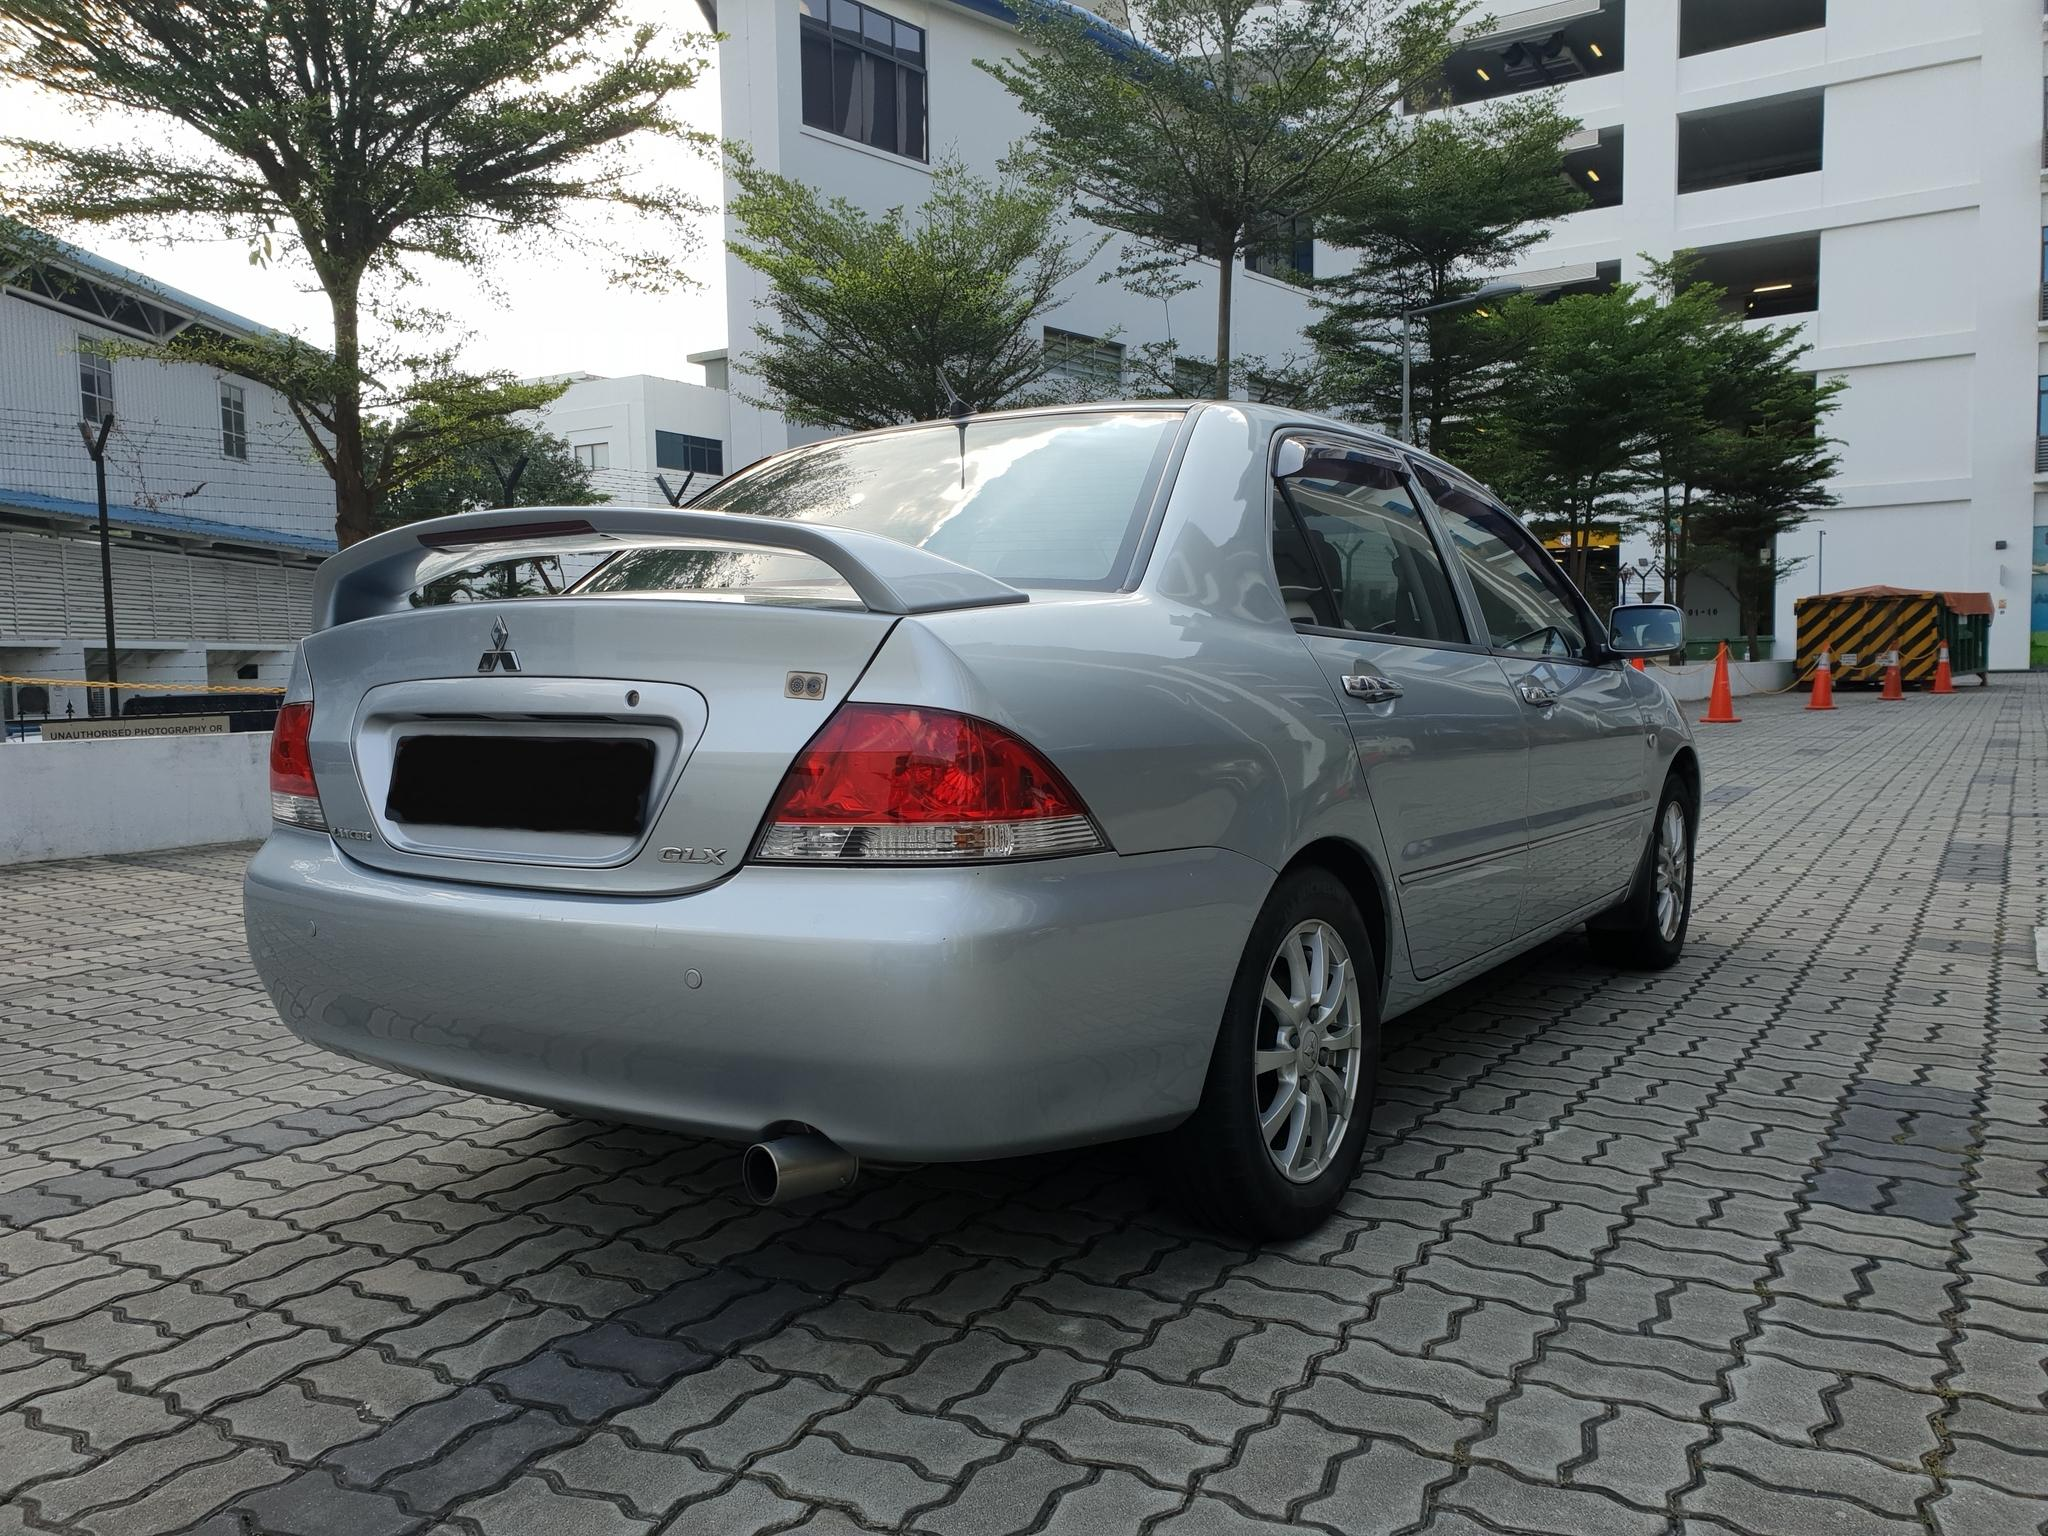 Mitsubishi Lancer RENTING OUT THE CHEAPEST VEHICLE FOR Grab/Ryde/Personal USAGEZ